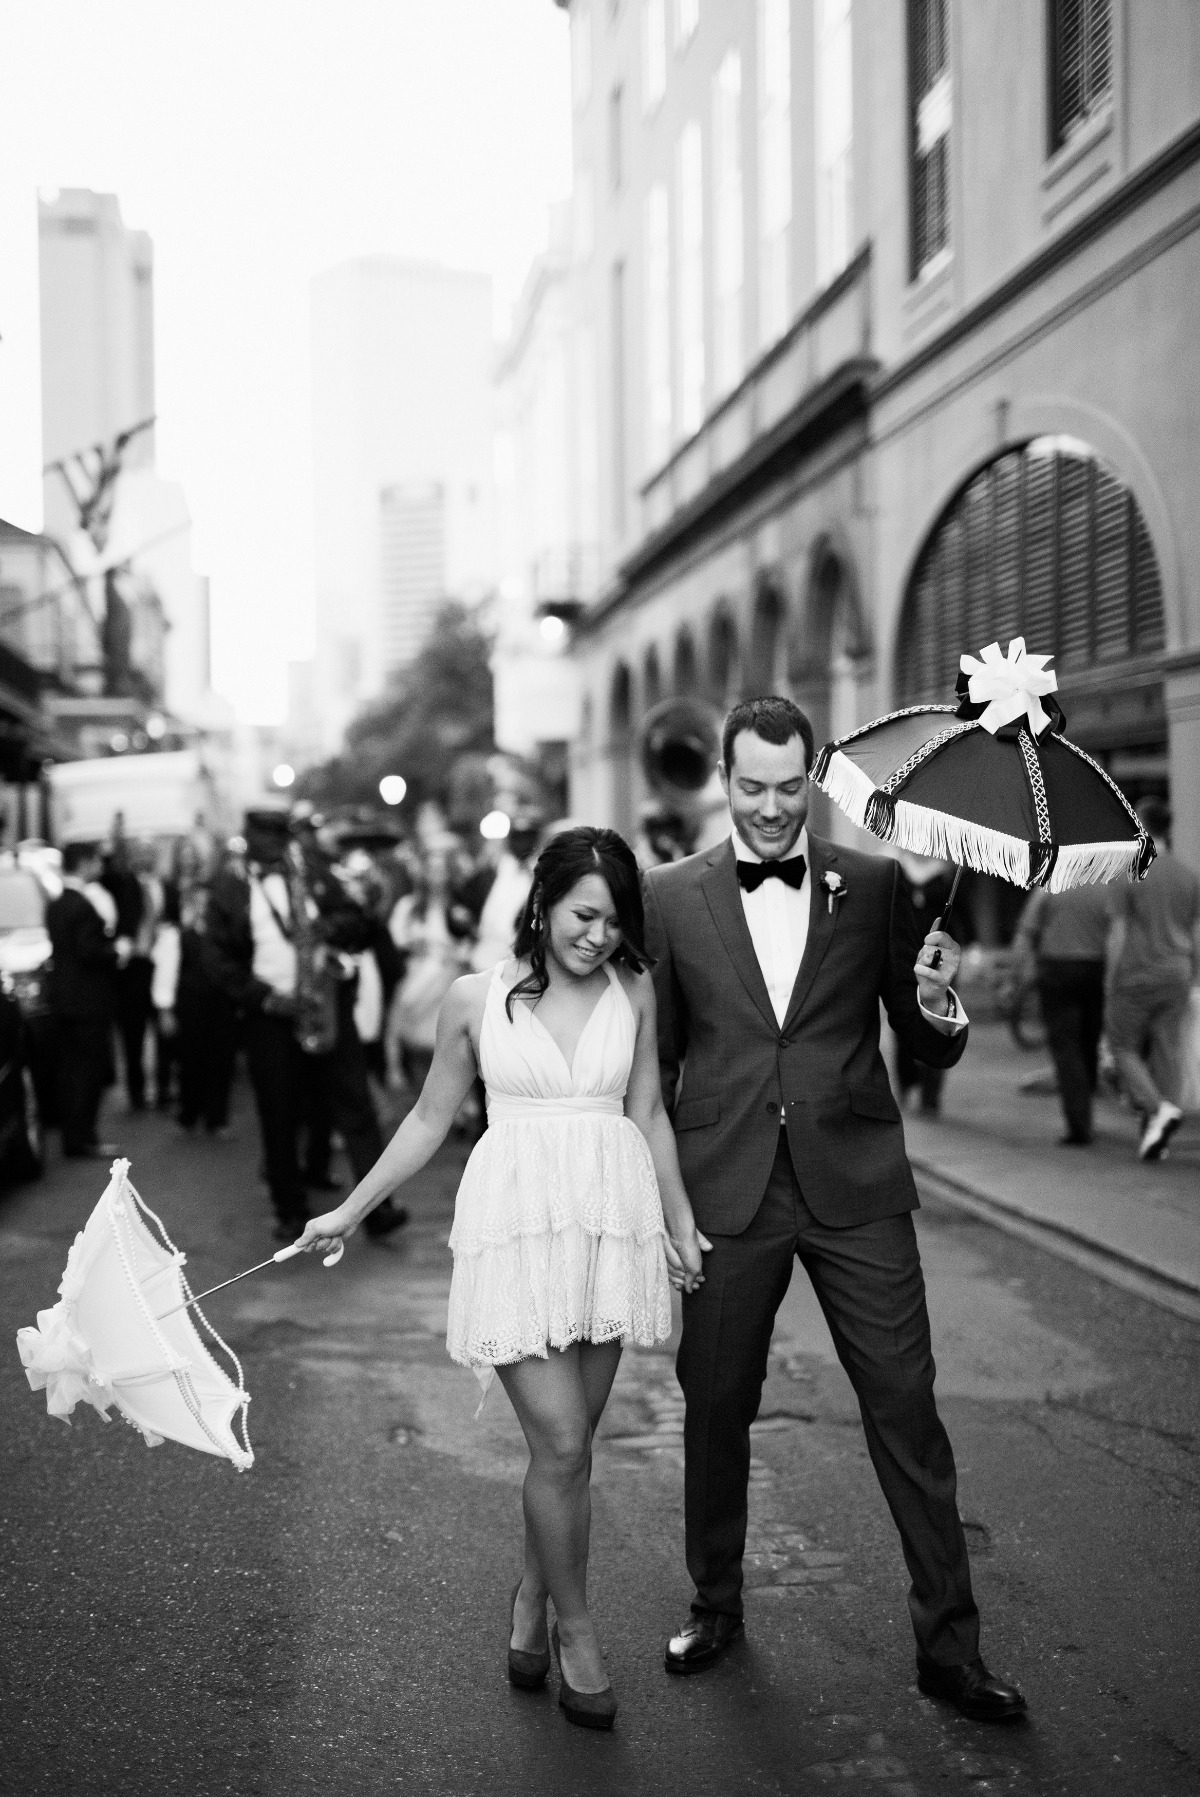 10 Unique Ways to Have an Unforgettable Wedding that Won't Pad Your Budget